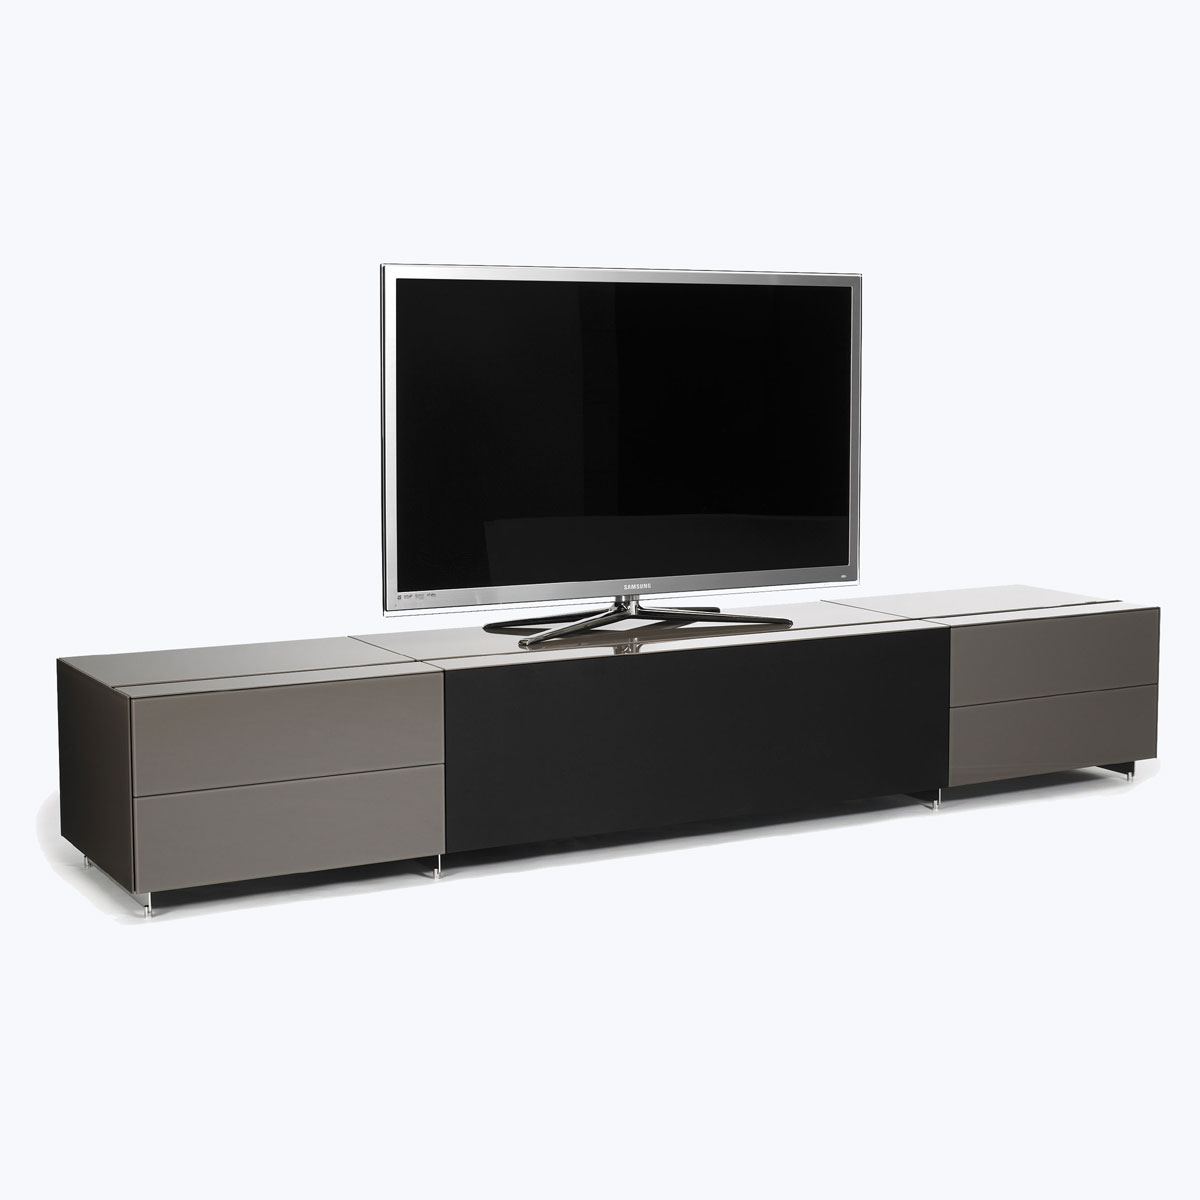 spectral cocoon co1000 co1001 co1002 tv lowboard. Black Bedroom Furniture Sets. Home Design Ideas